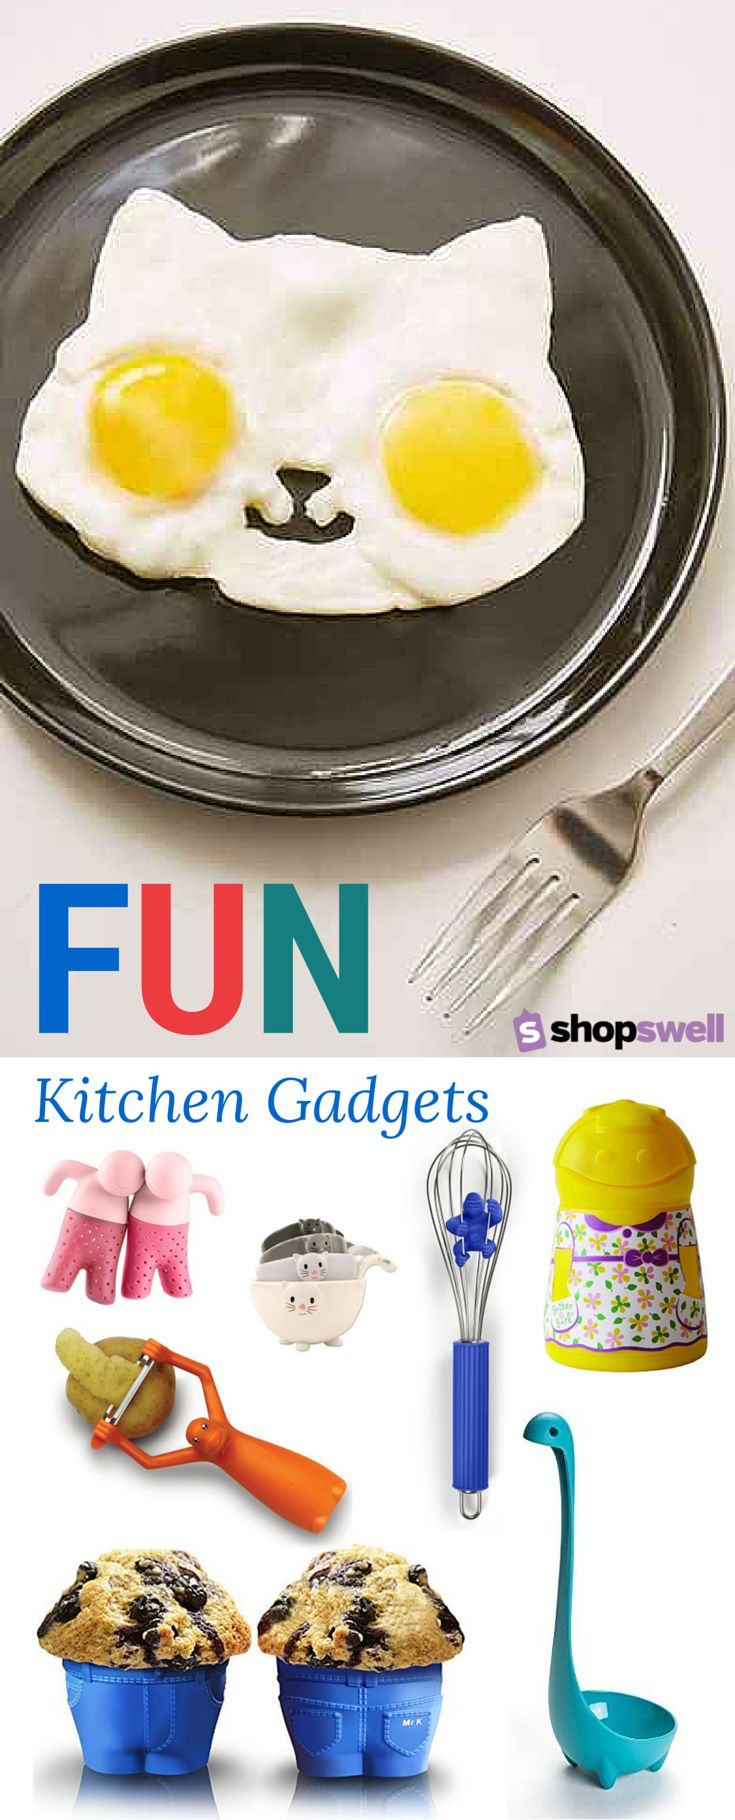 Best 25+ Fun kitchen gadgets ideas on Pinterest | Kitchen gadgets ...